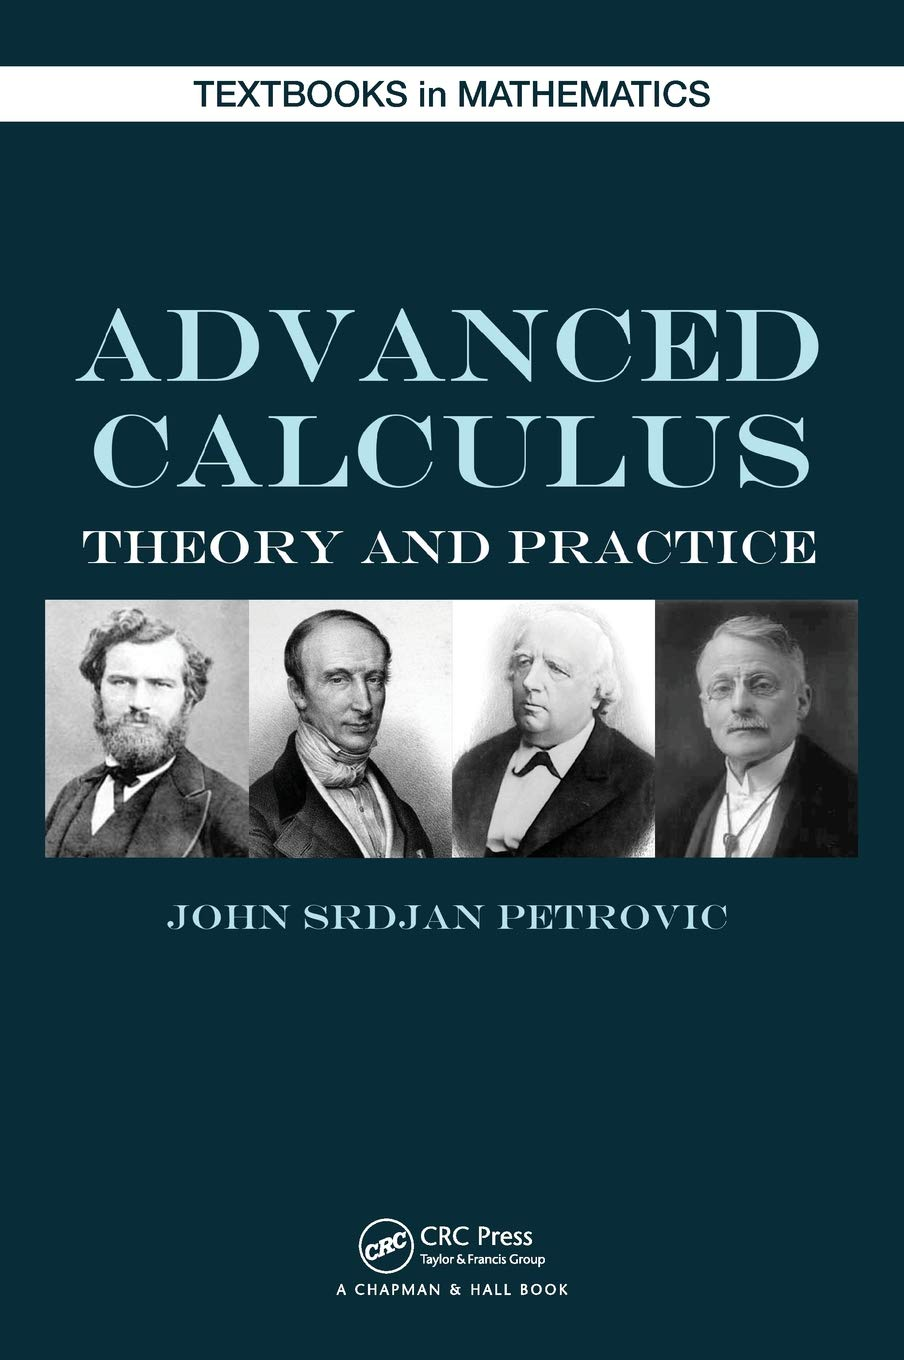 Advanced Calculus: Theory and Practice (Textbooks in Mathematics) by Brand: Chapman and Hall/CRC